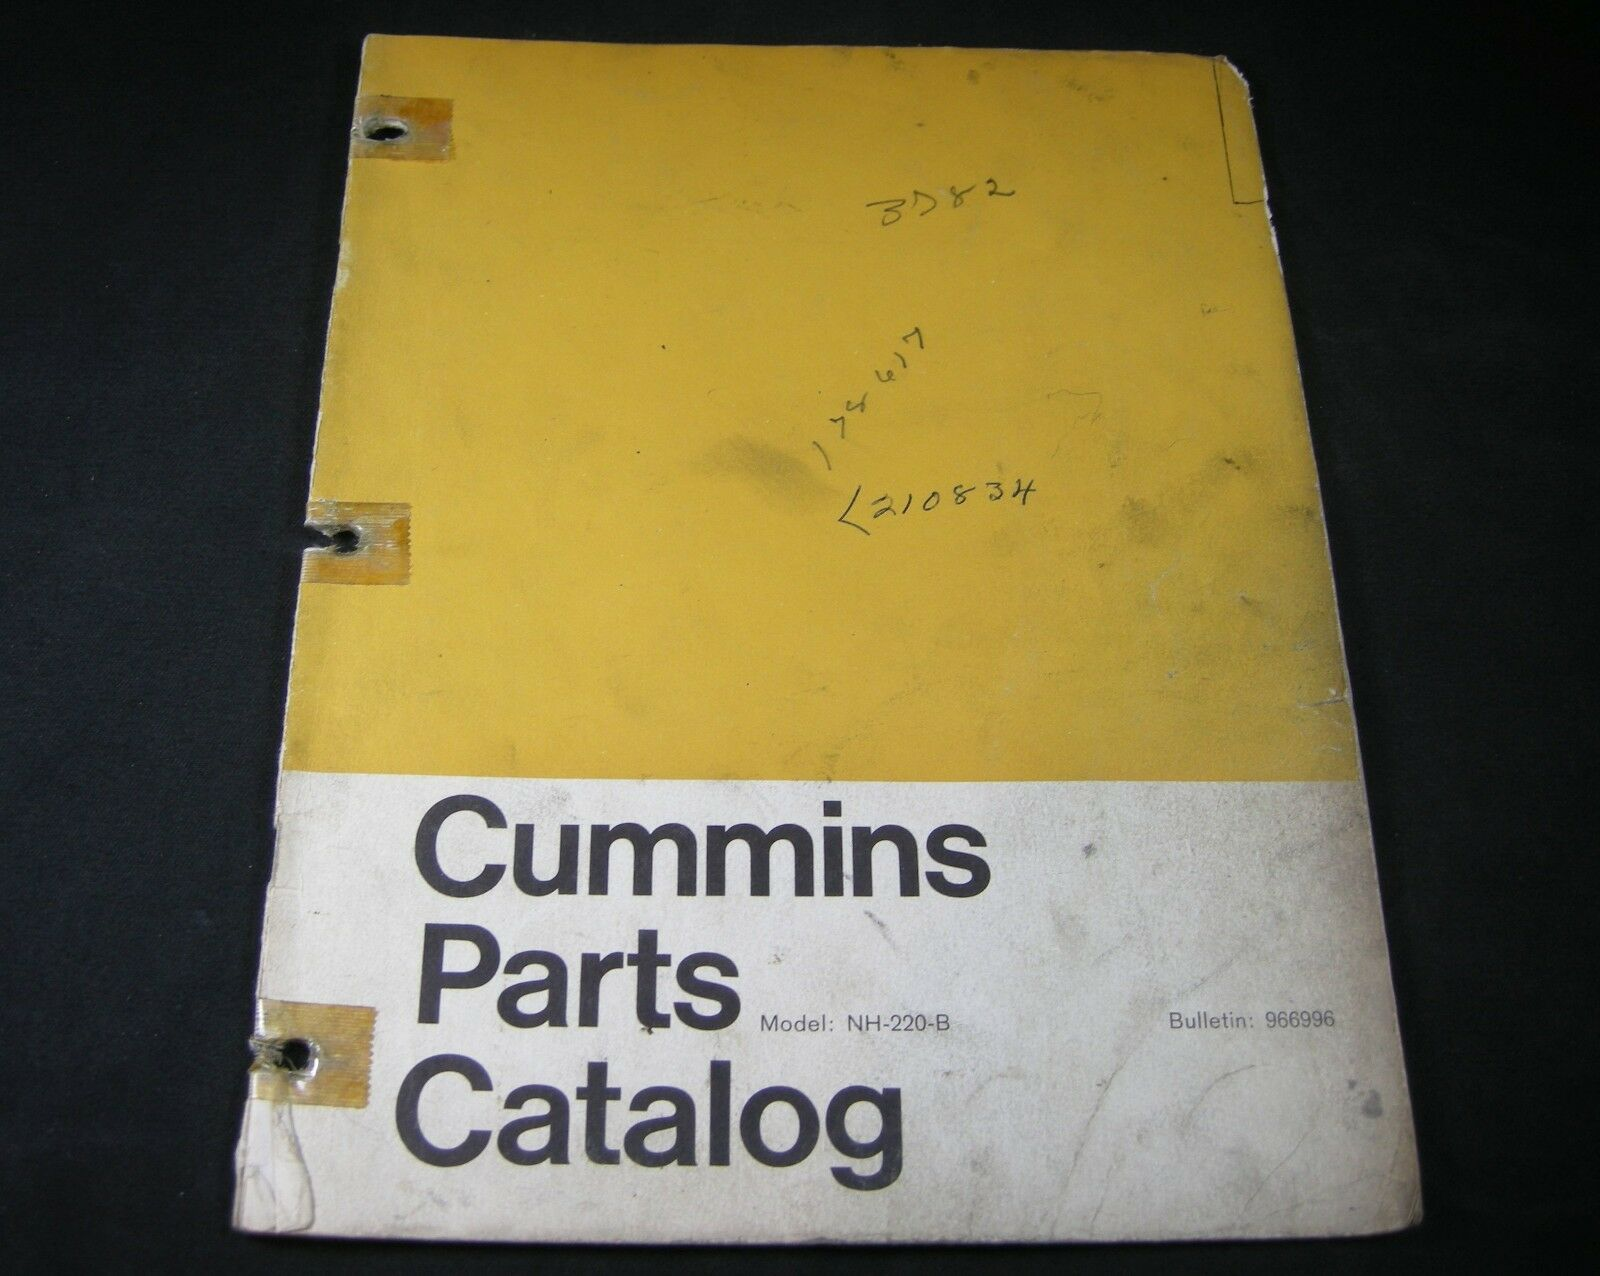 Cummins Nh 220 B Diesel Engine Parts Manual Book Catalog Nh220b Kawasaki Diagram 1 Of 2only Available